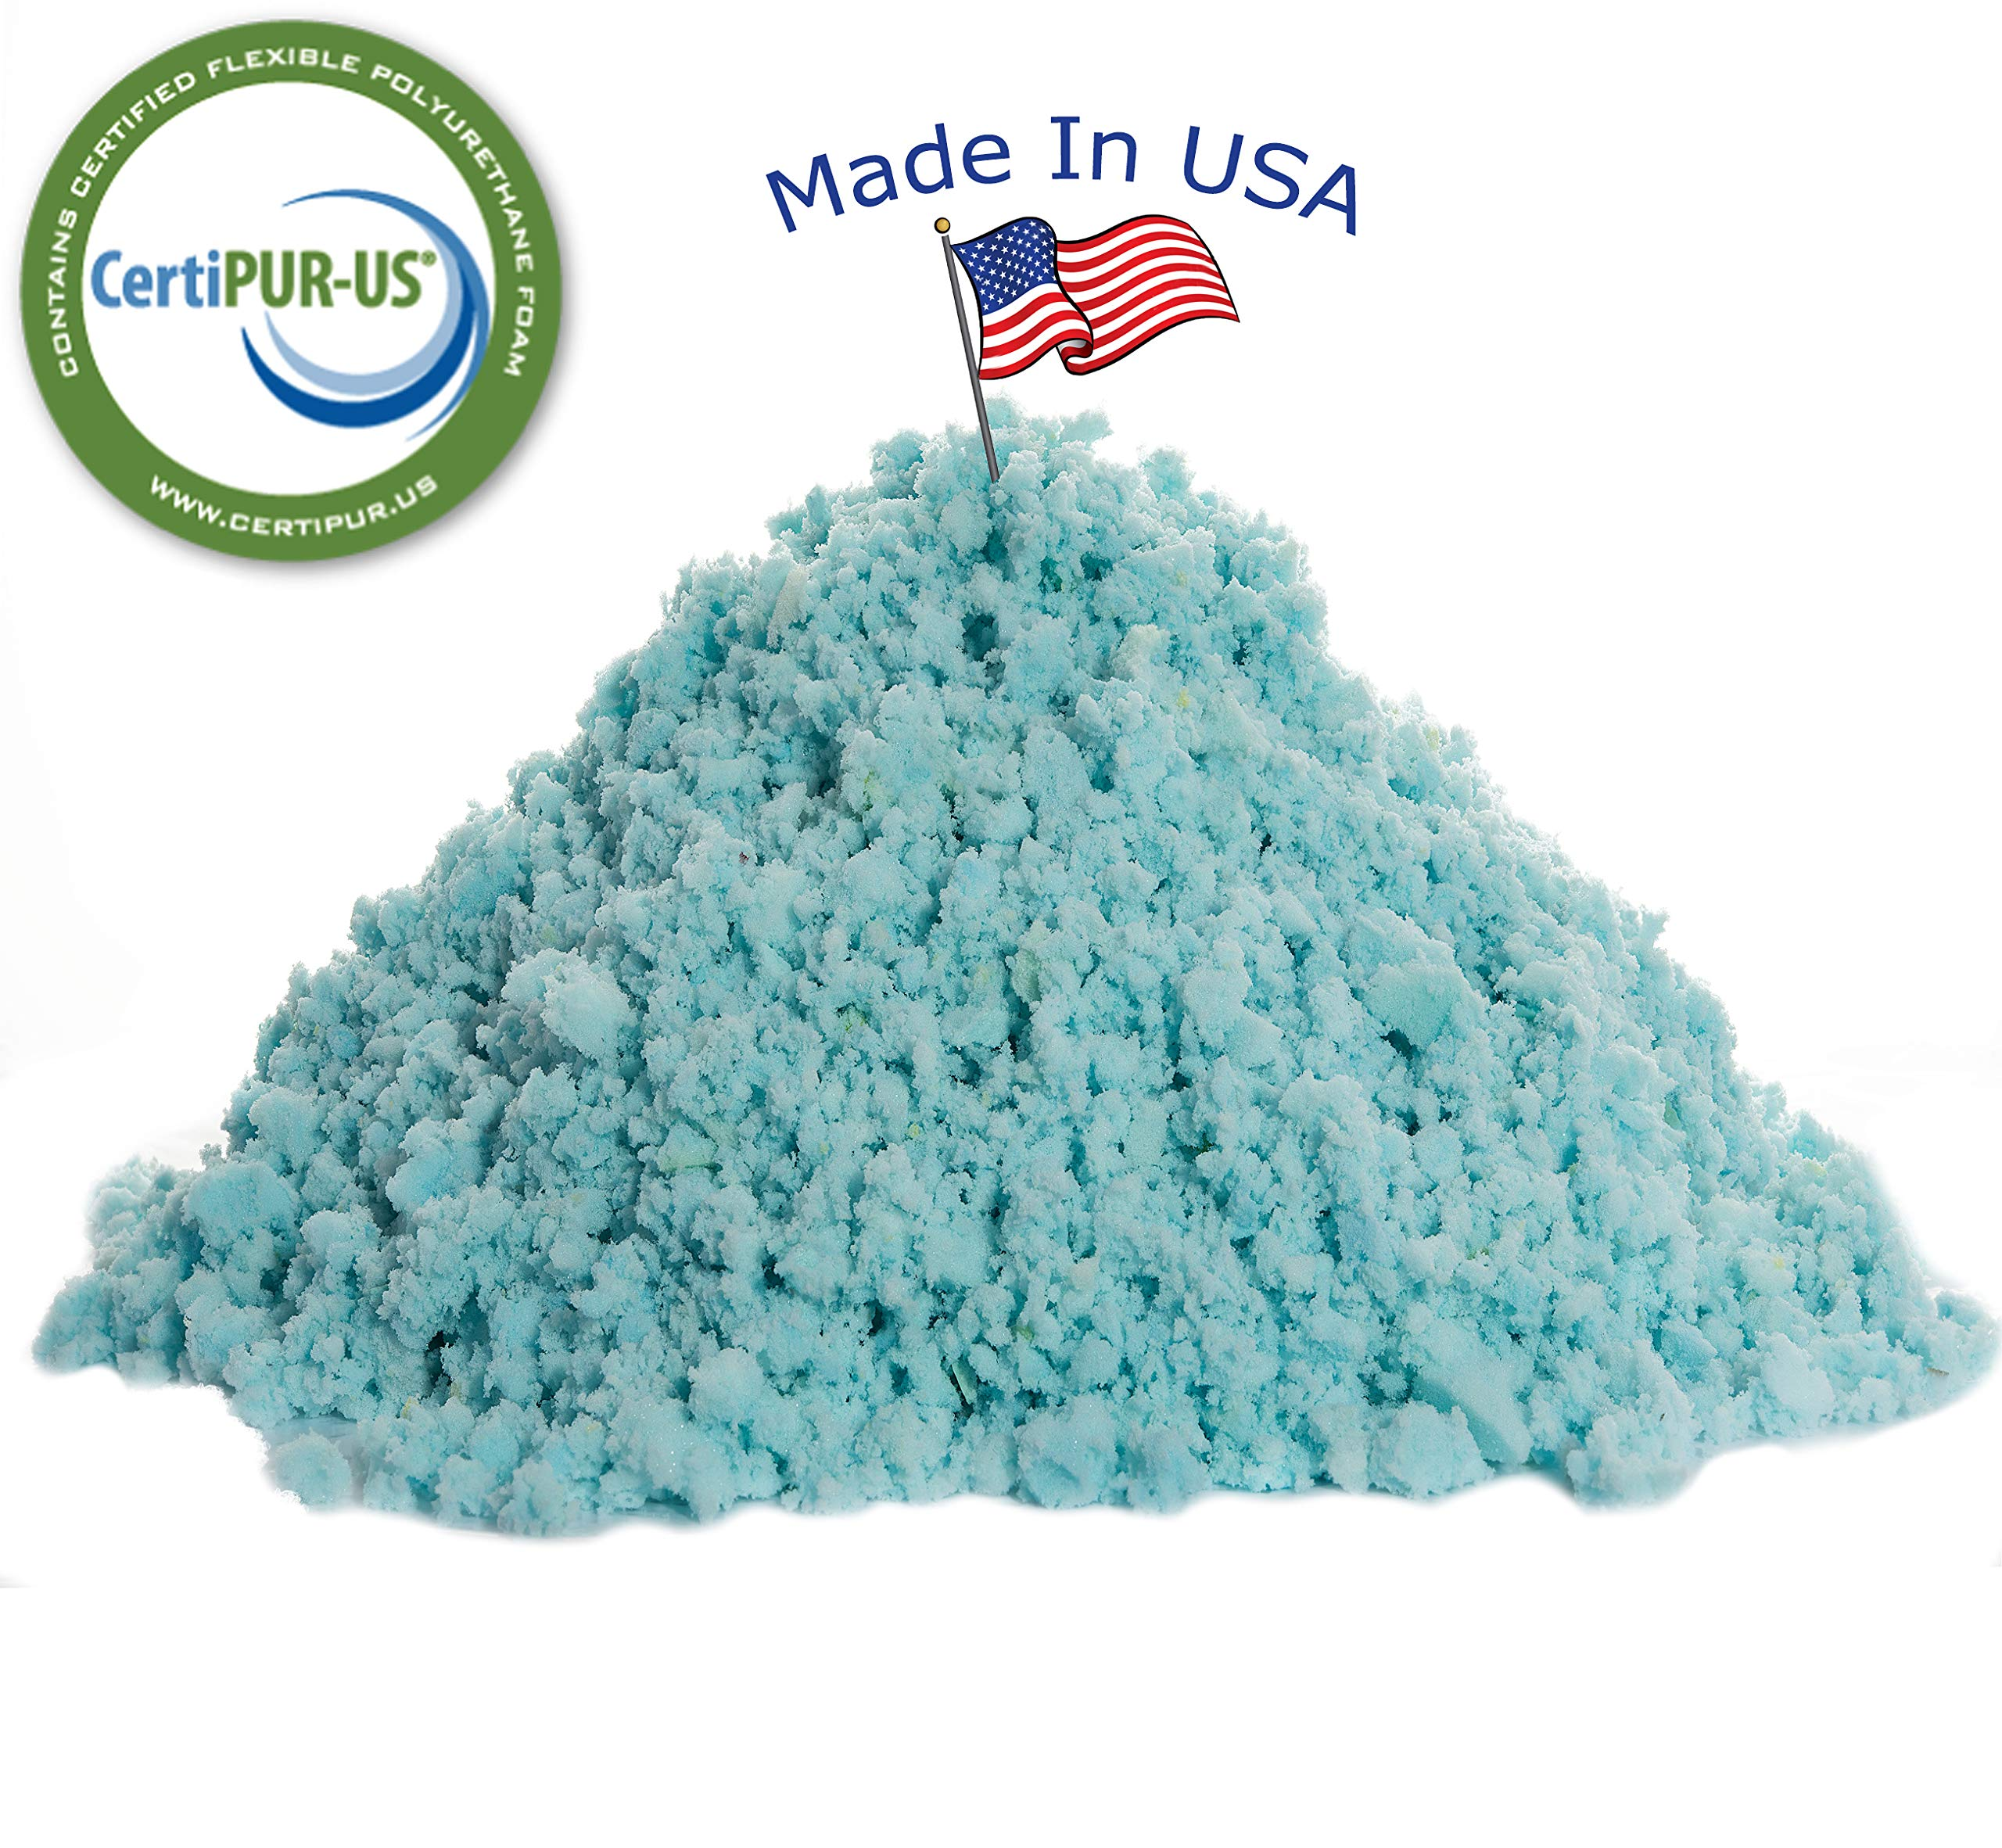 LuxyFluff Shredded Memory Foam with Cooling Gel Fill - CertiPUR-US Certified - Made in USA - 5lbs by LuxyFluff